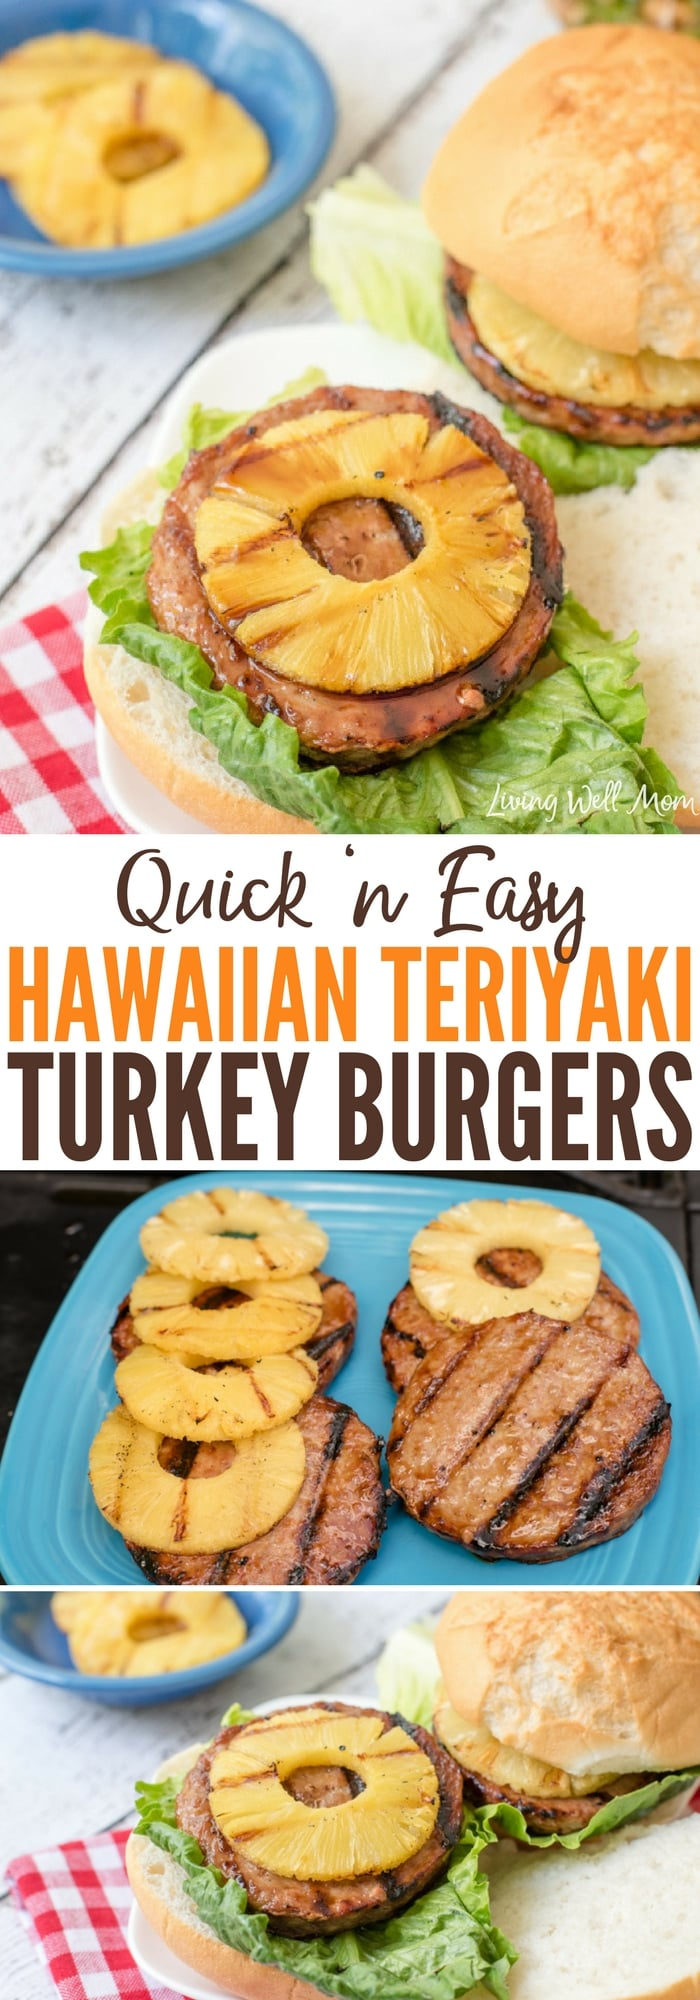 Hawaiian Teriyaki Turkey Burgers are gluten-free and a tasty twist on regular burgers. They're quick and easy to make and kids love this grilling recipe too!